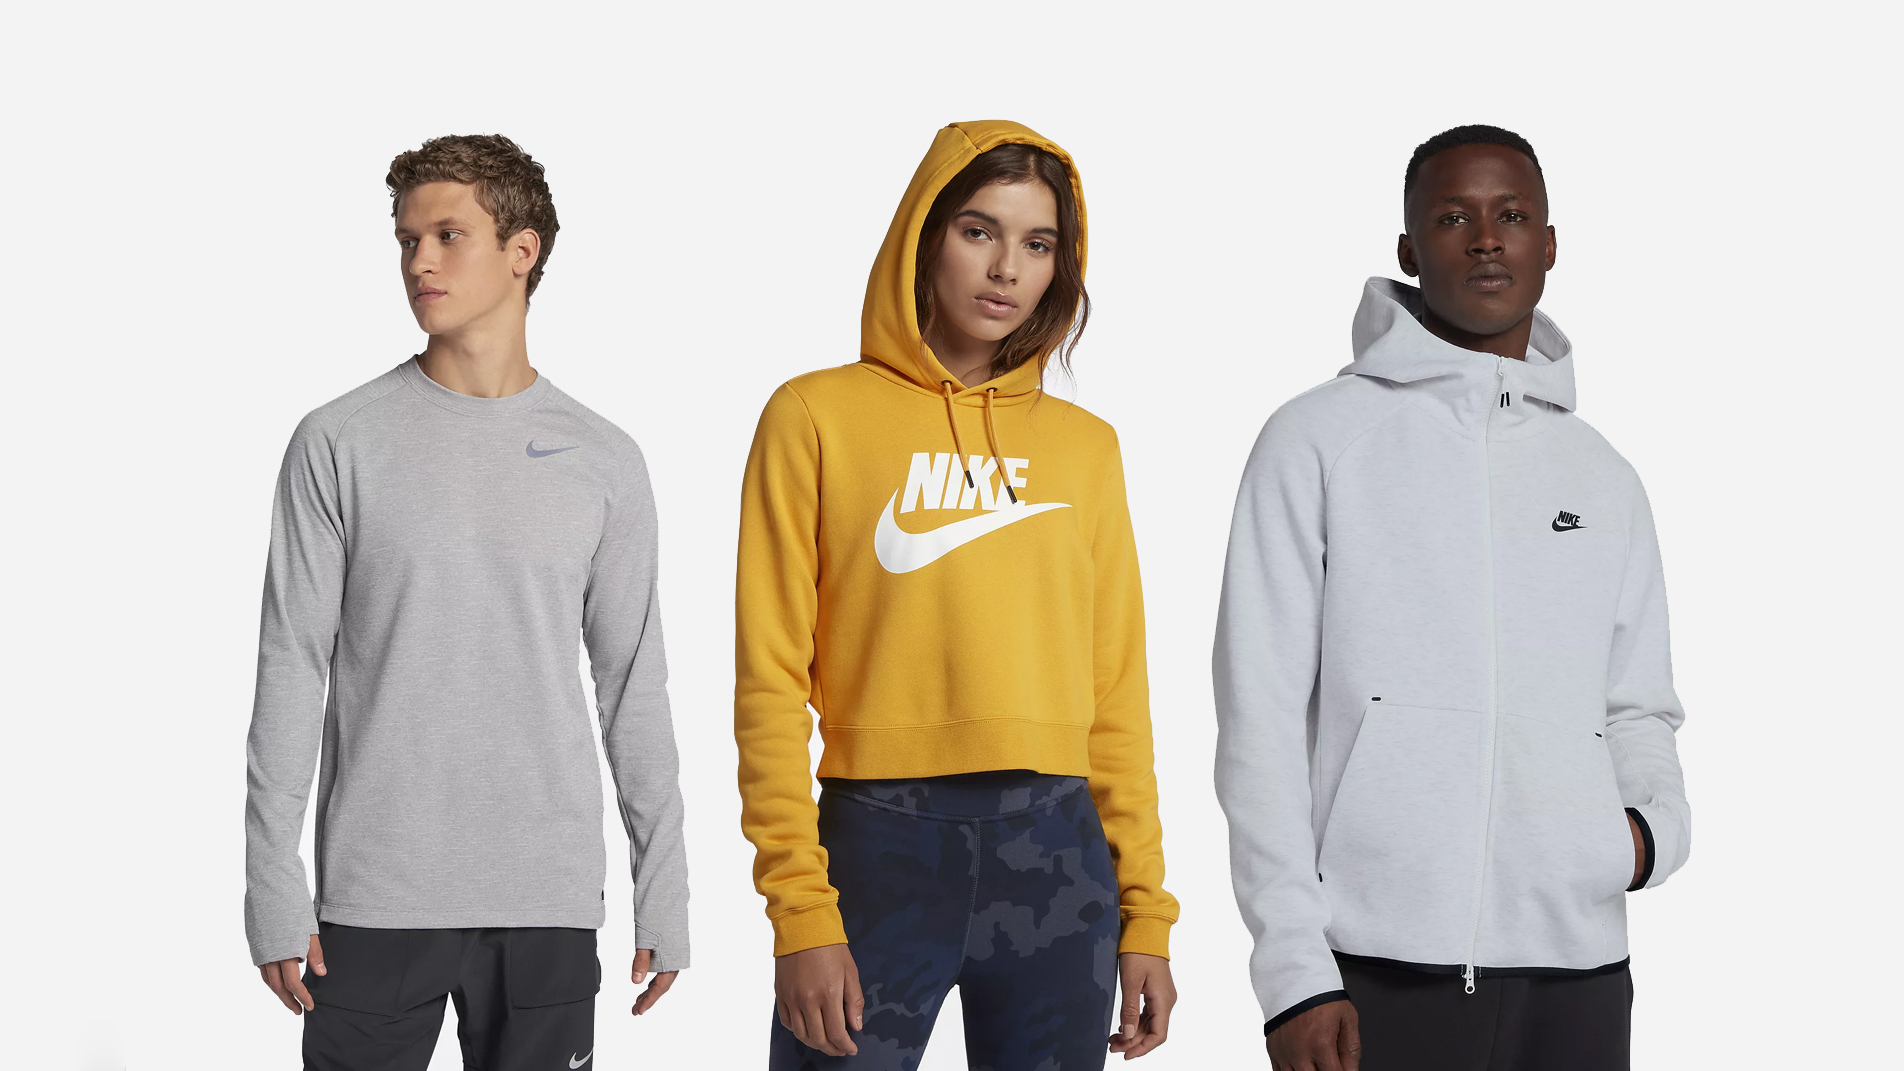 dd7116e6a Best Nike deals: get affordable Nike gear for Amazon Prime Day and July 2019